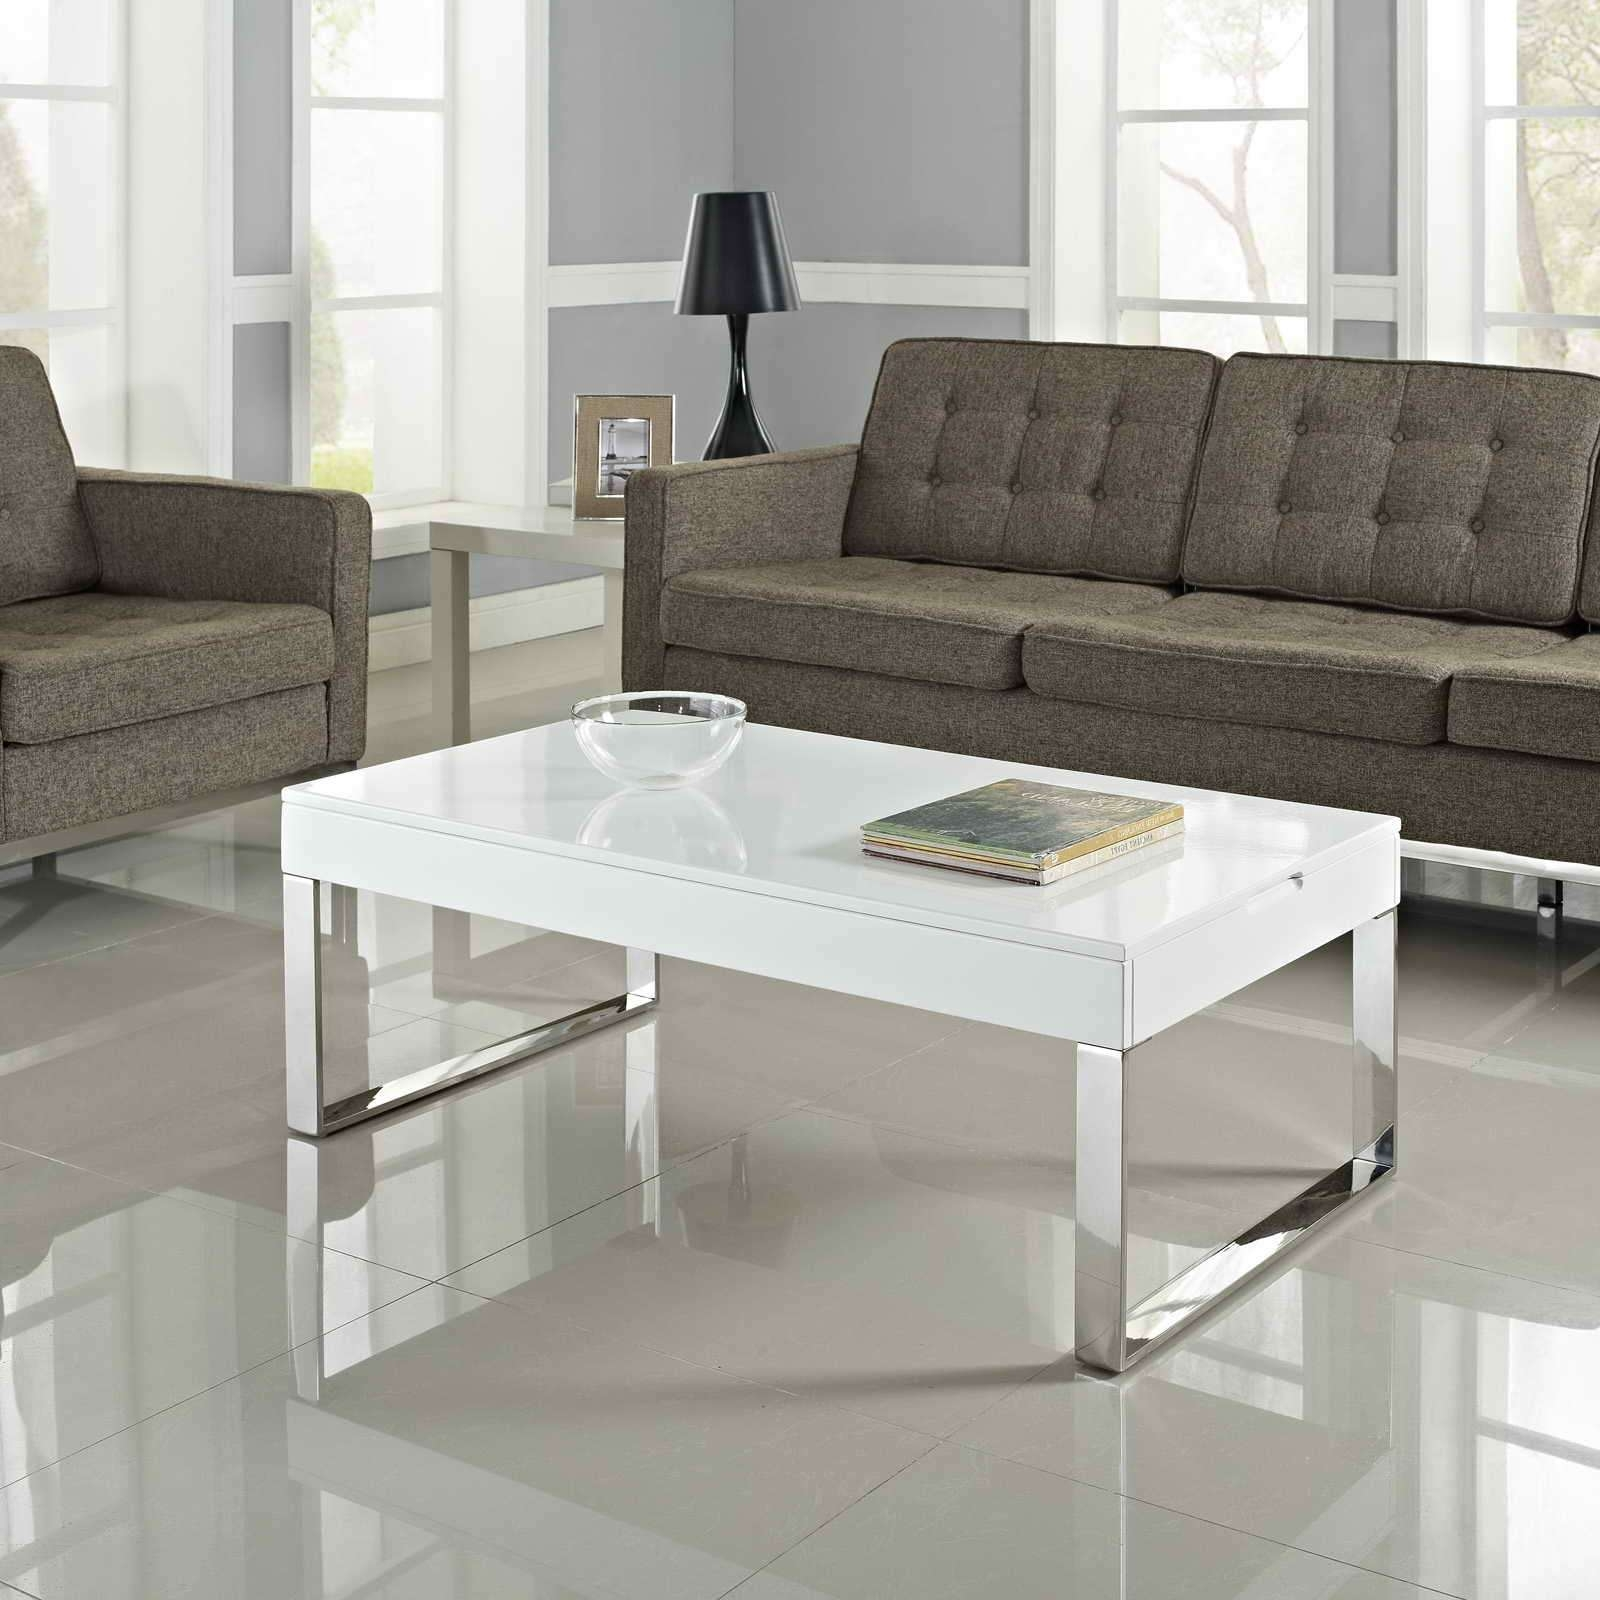 Coffee Table : Awesome Lift Top Coffee Table Ikea Sofa Table Ikea Inside Widely Used Glass Lift Top Coffee Tables (View 9 of 20)